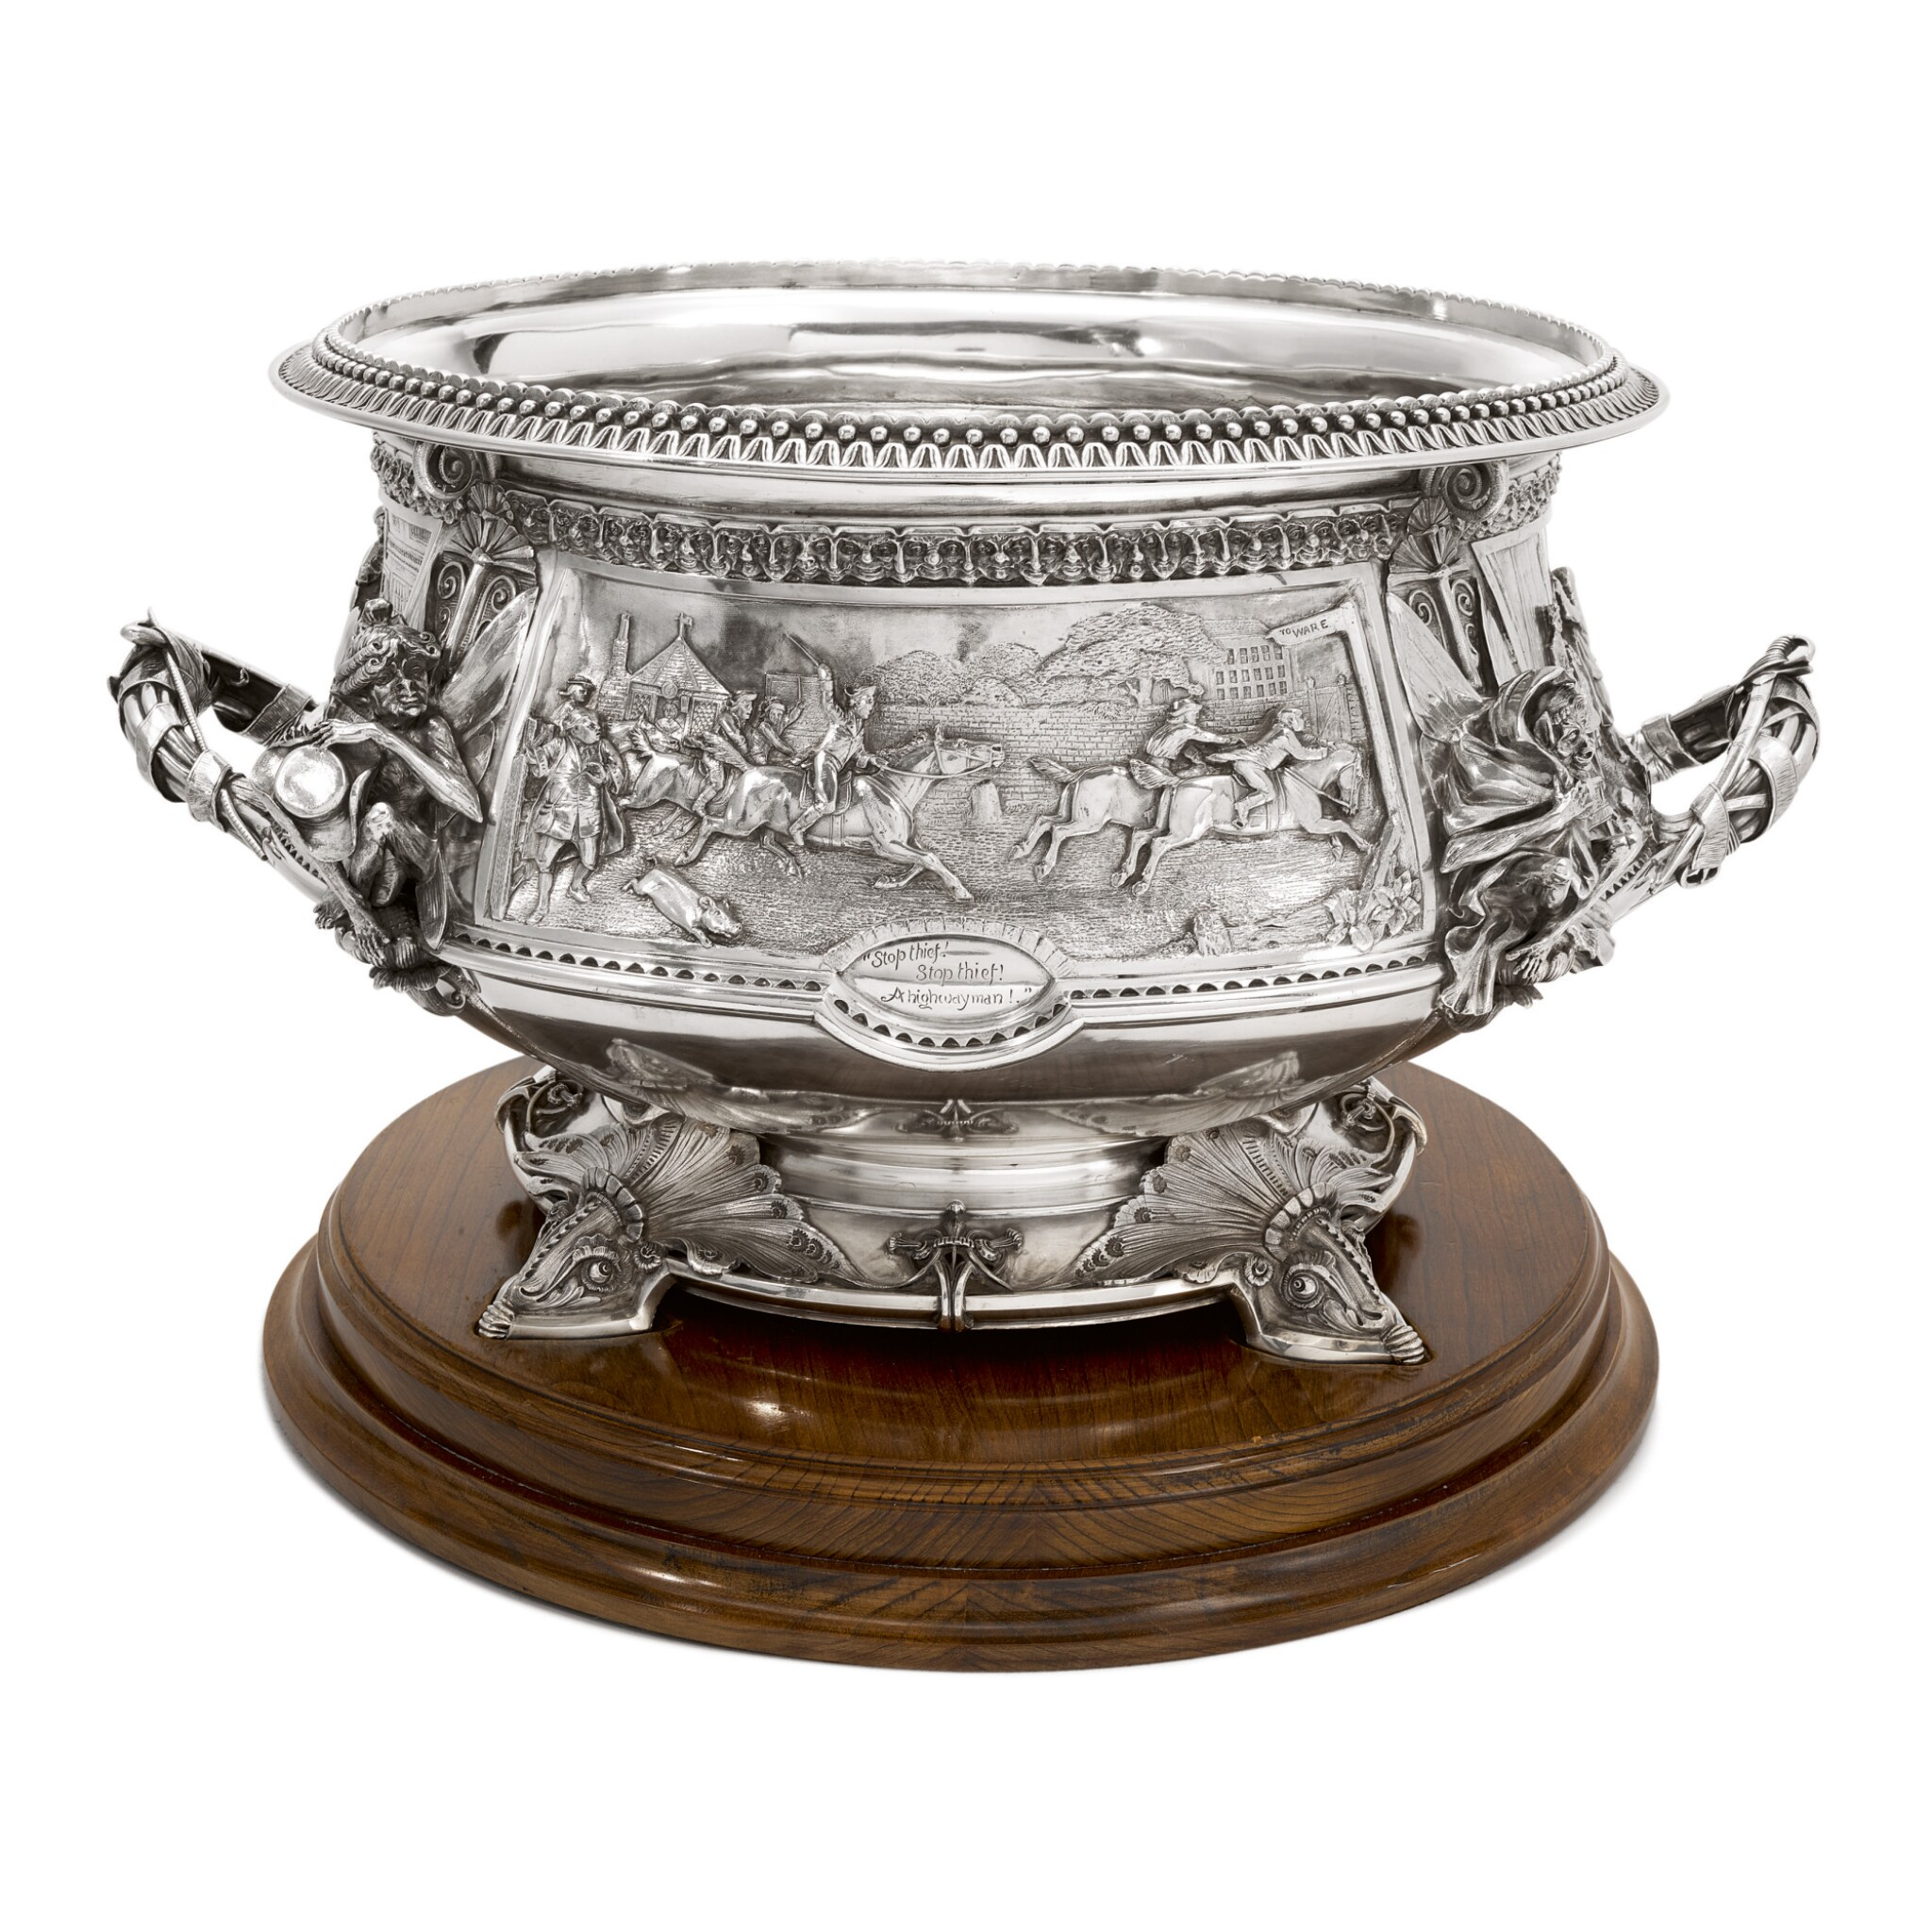 View 1 of Lot 265.  A VICTORIAN SILVER LARGE PUNCH BOWL, JOHN HUNT & ROBERT ROSKELL, LONDON, 1881.